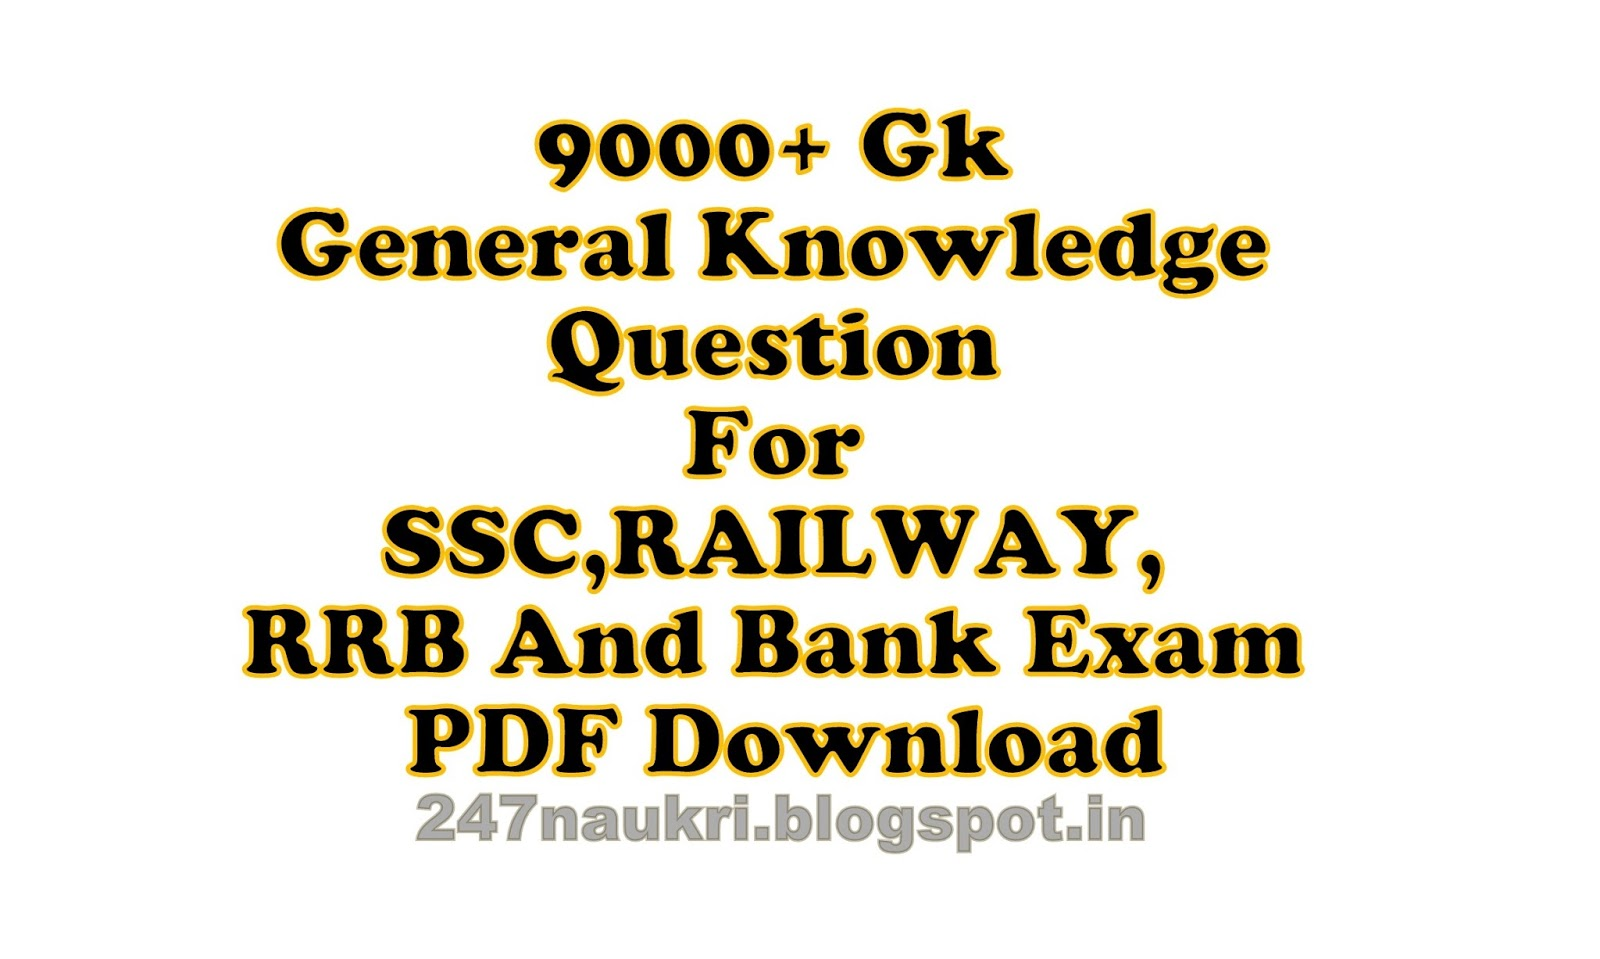 Get Free SSC General Knowledge & Current Affairs GK Books Download In PDF